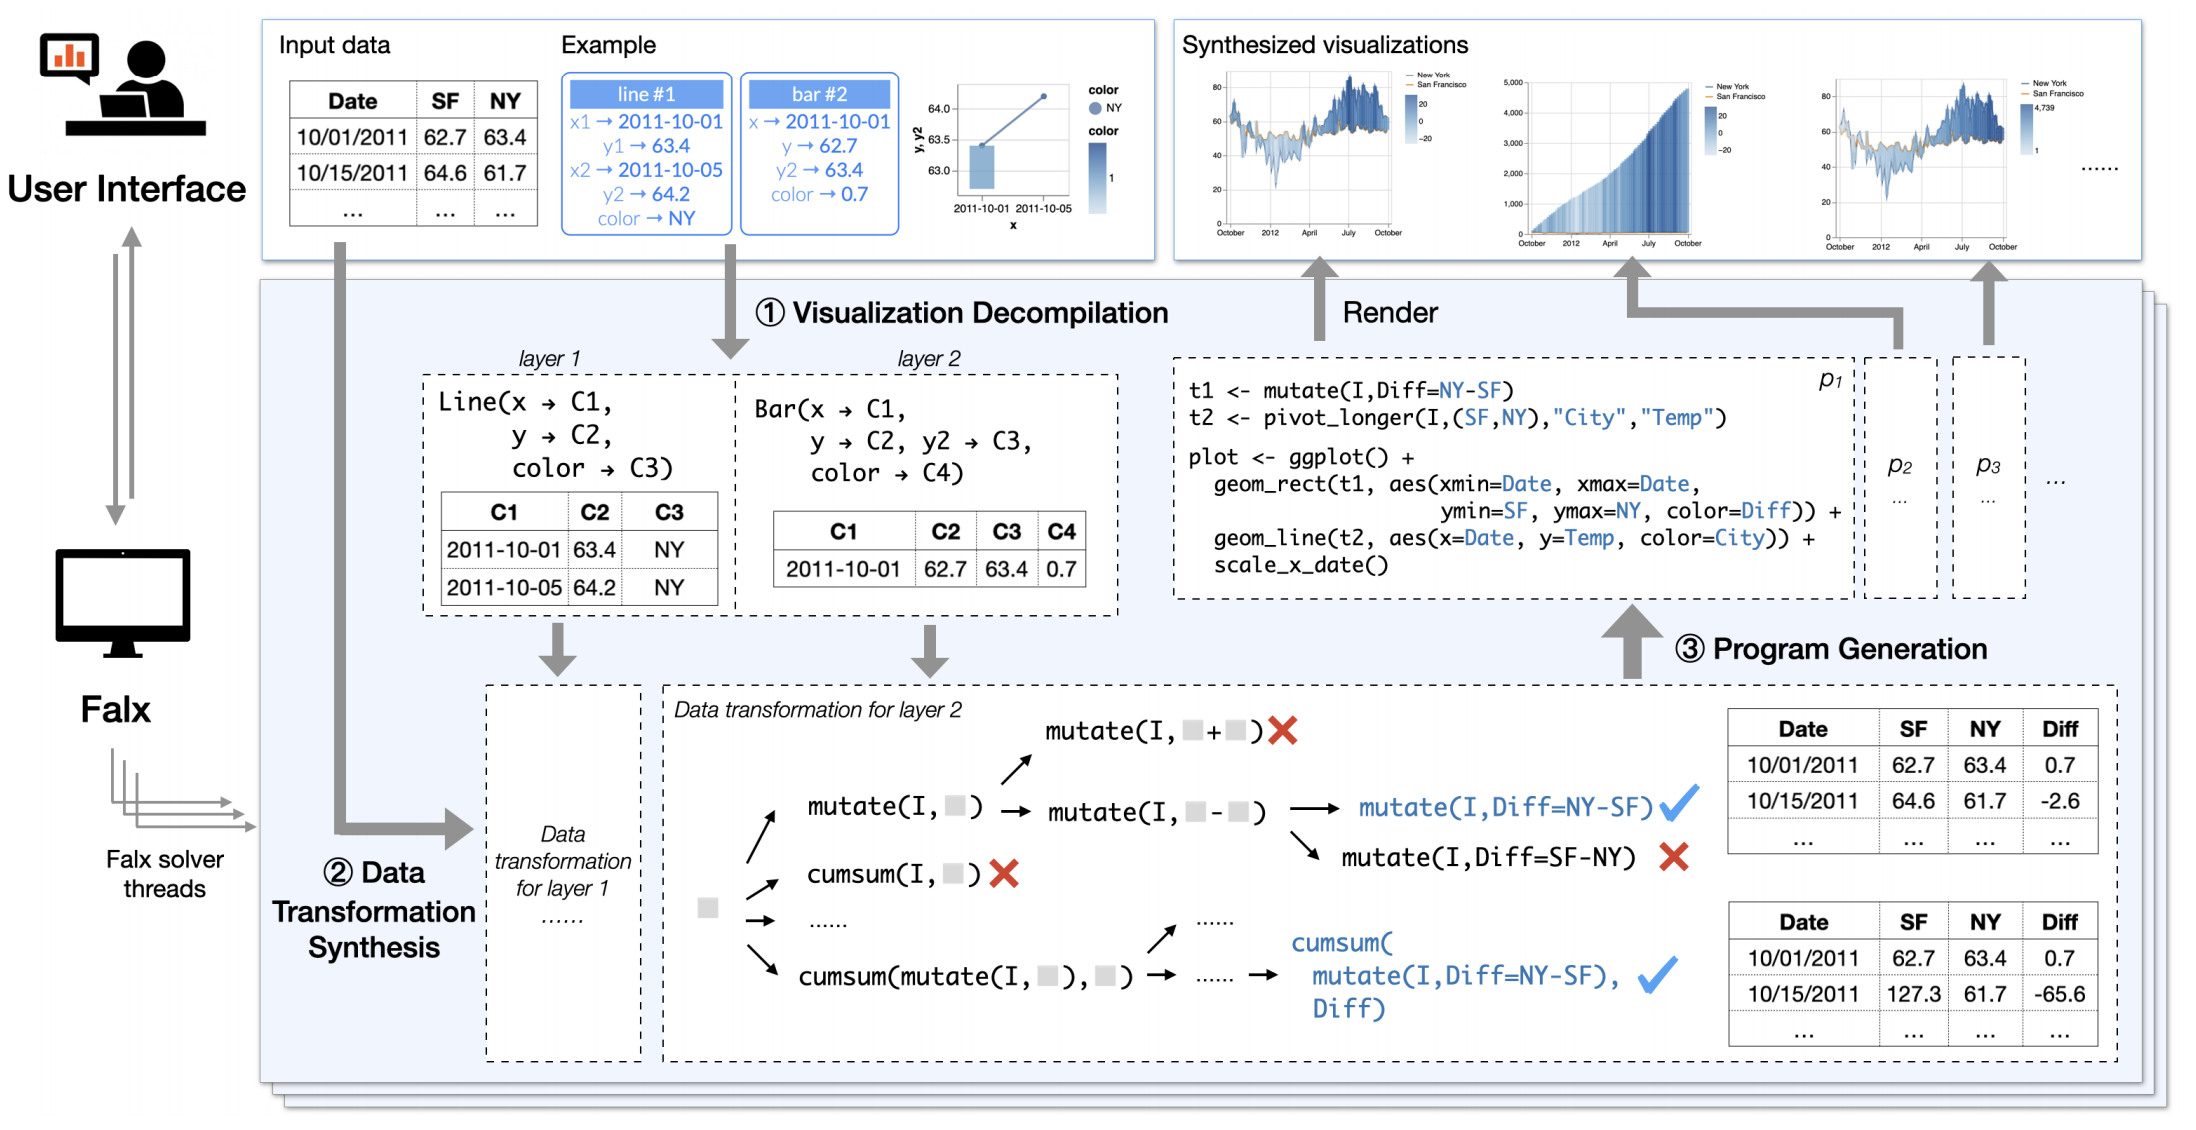 The architecture of the Falx system. Each solver thread synthesizes visualizations that match user examples in three steps: (1) visualization decompilation, (2) data transformation synthesis, and (3) program generation.